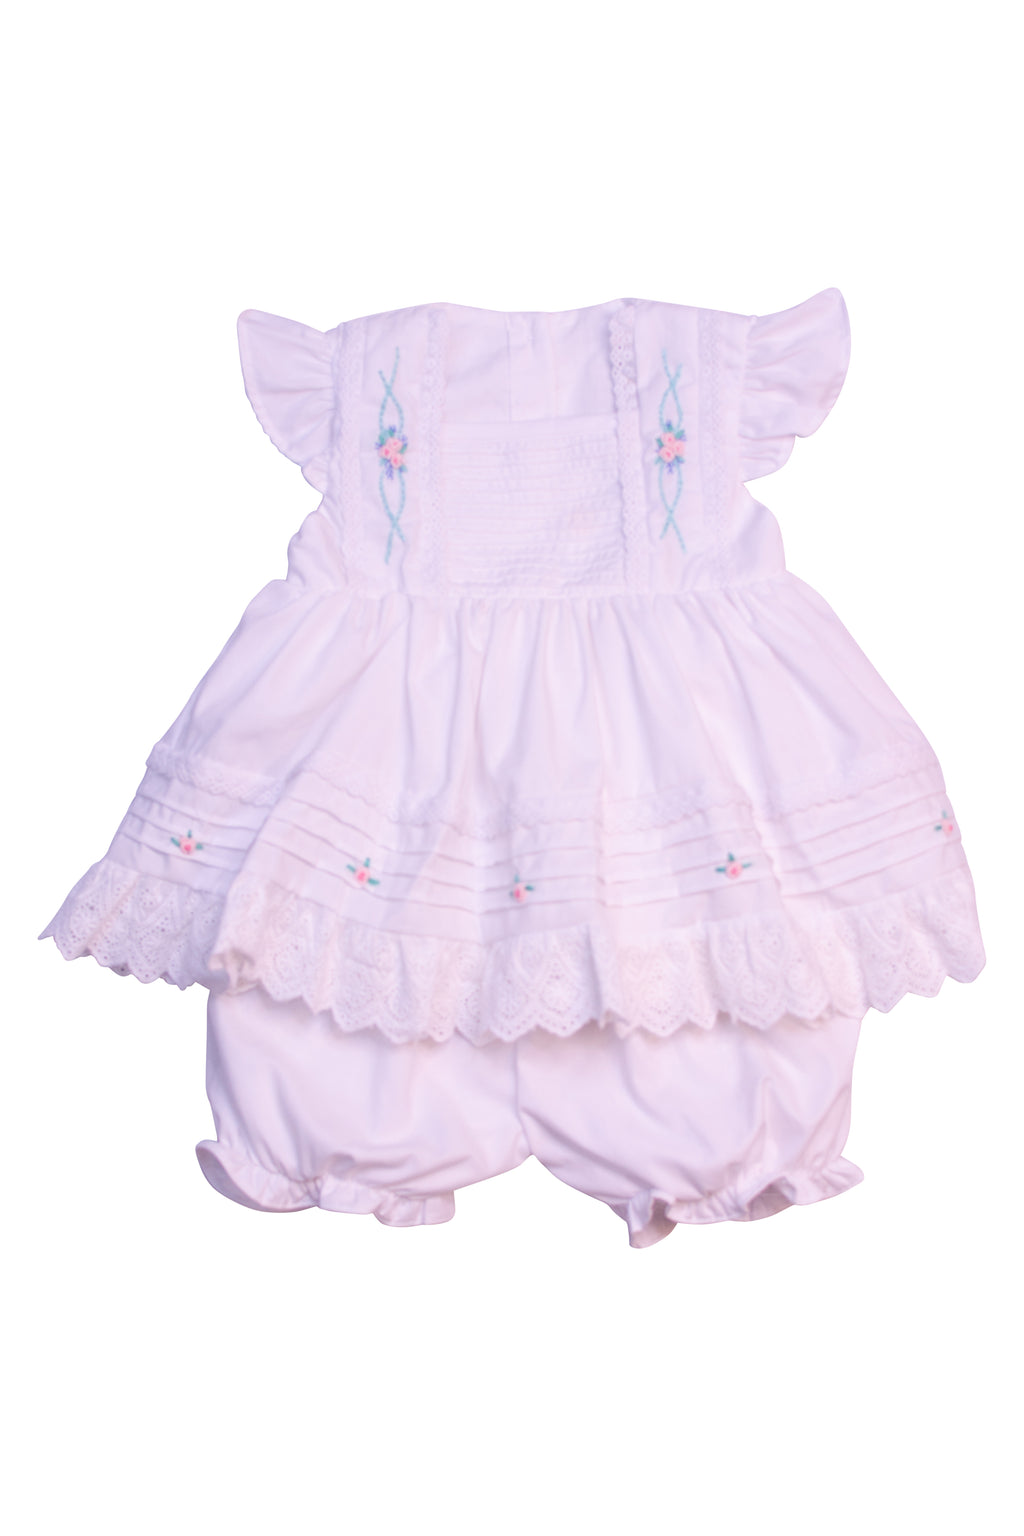 Girls White Pleated Floral Embroidery Bloomer Set